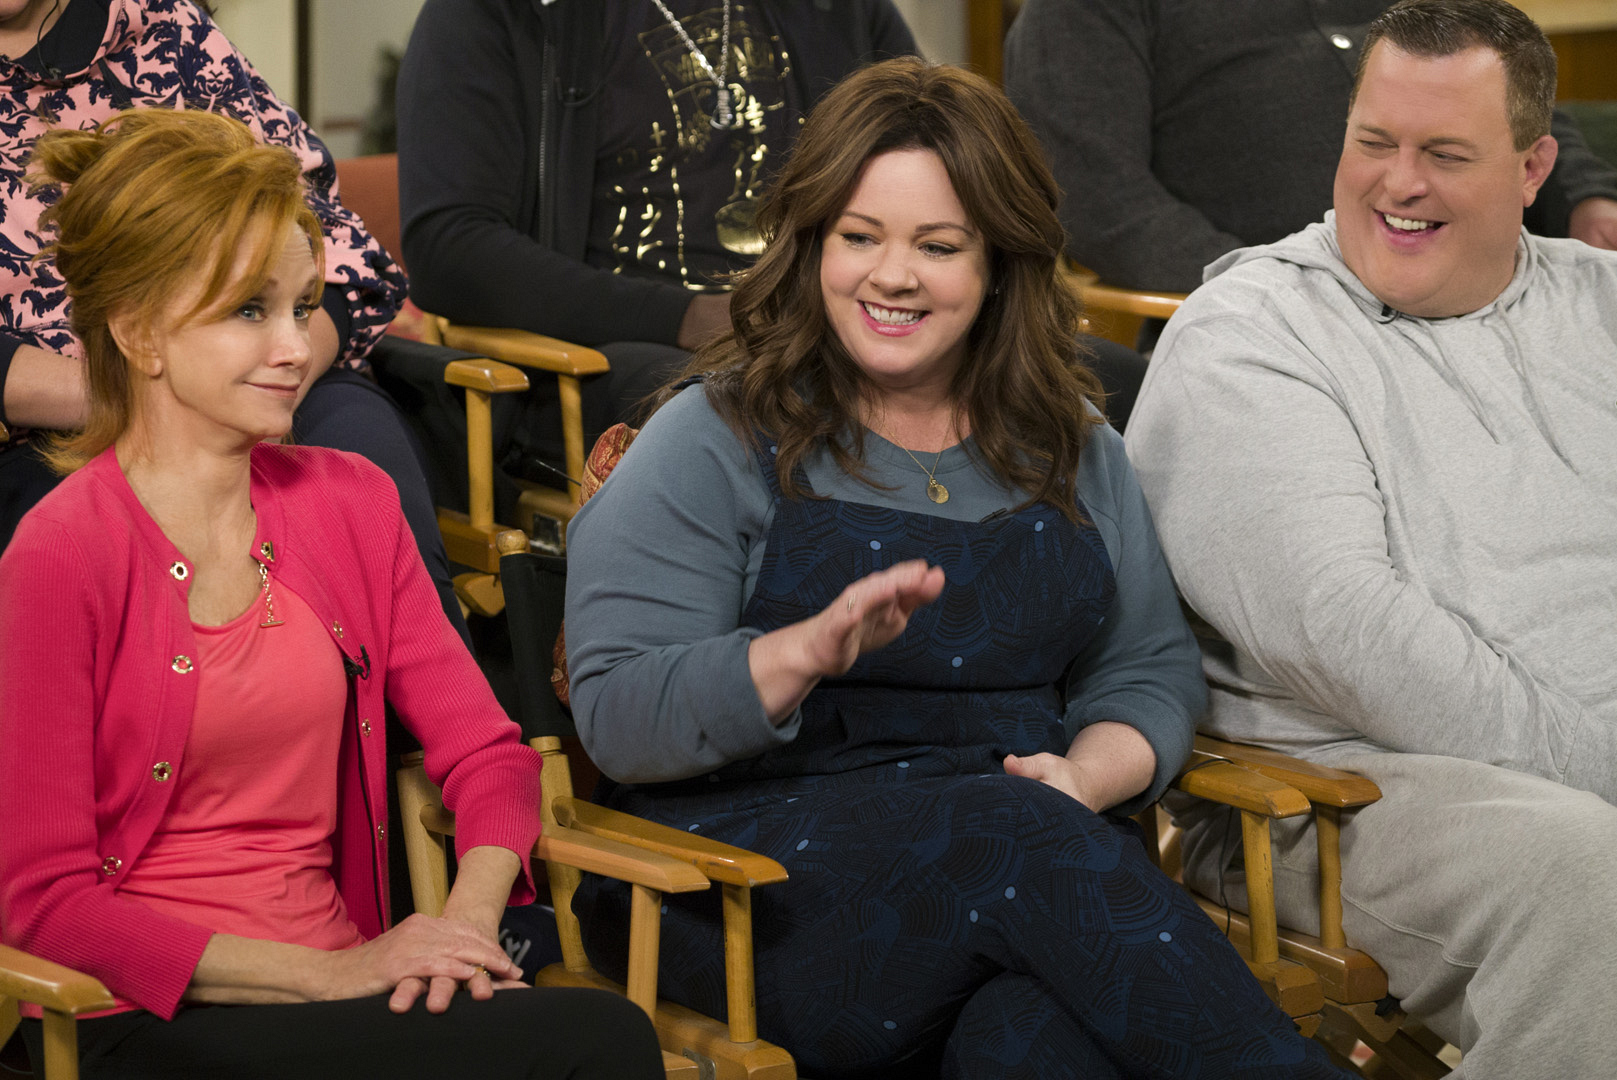 It's an emotional day on set when the cast films the final episode of Mike & Molly.